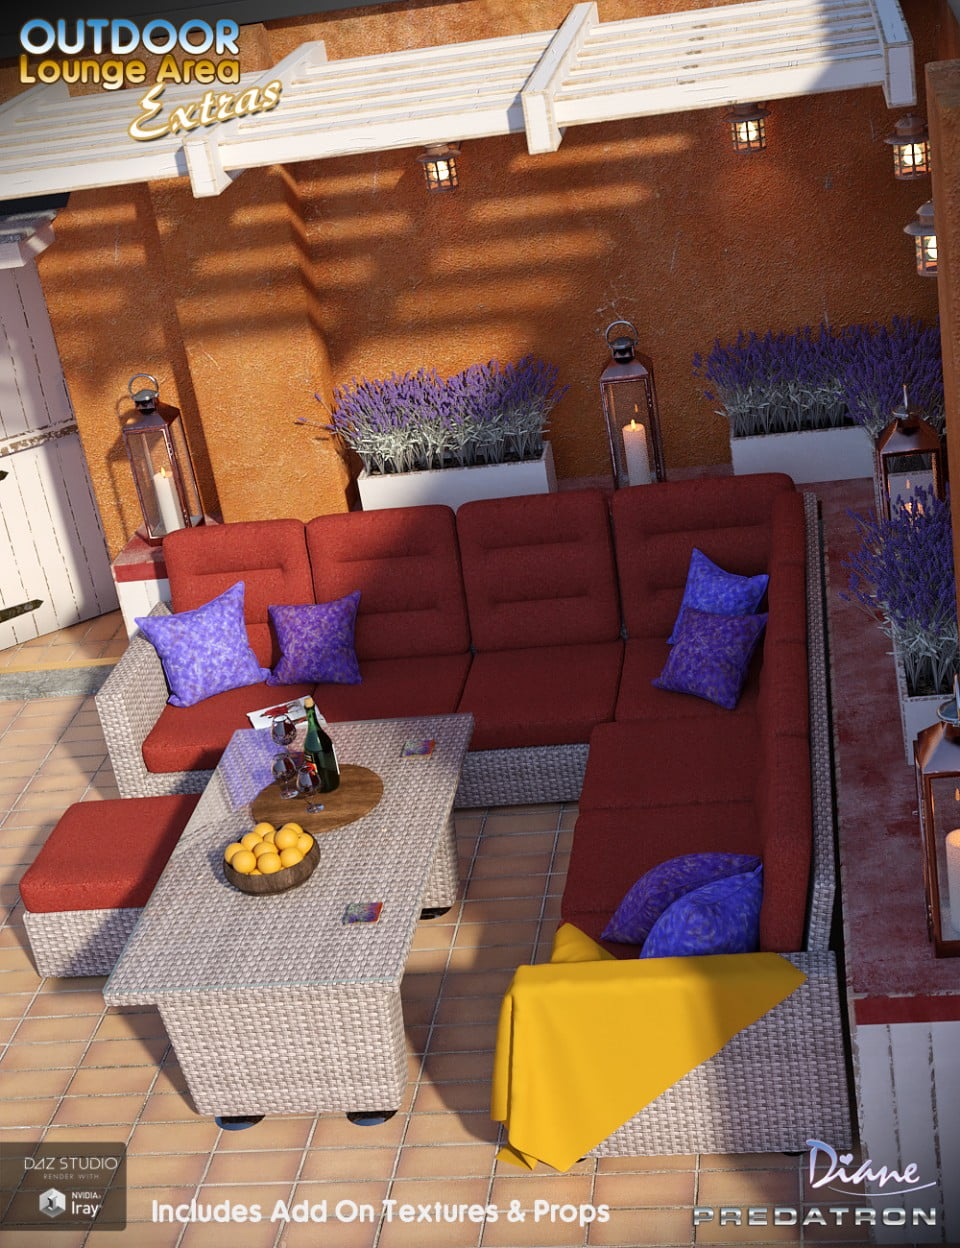 Outdoor Lounge Area Extras